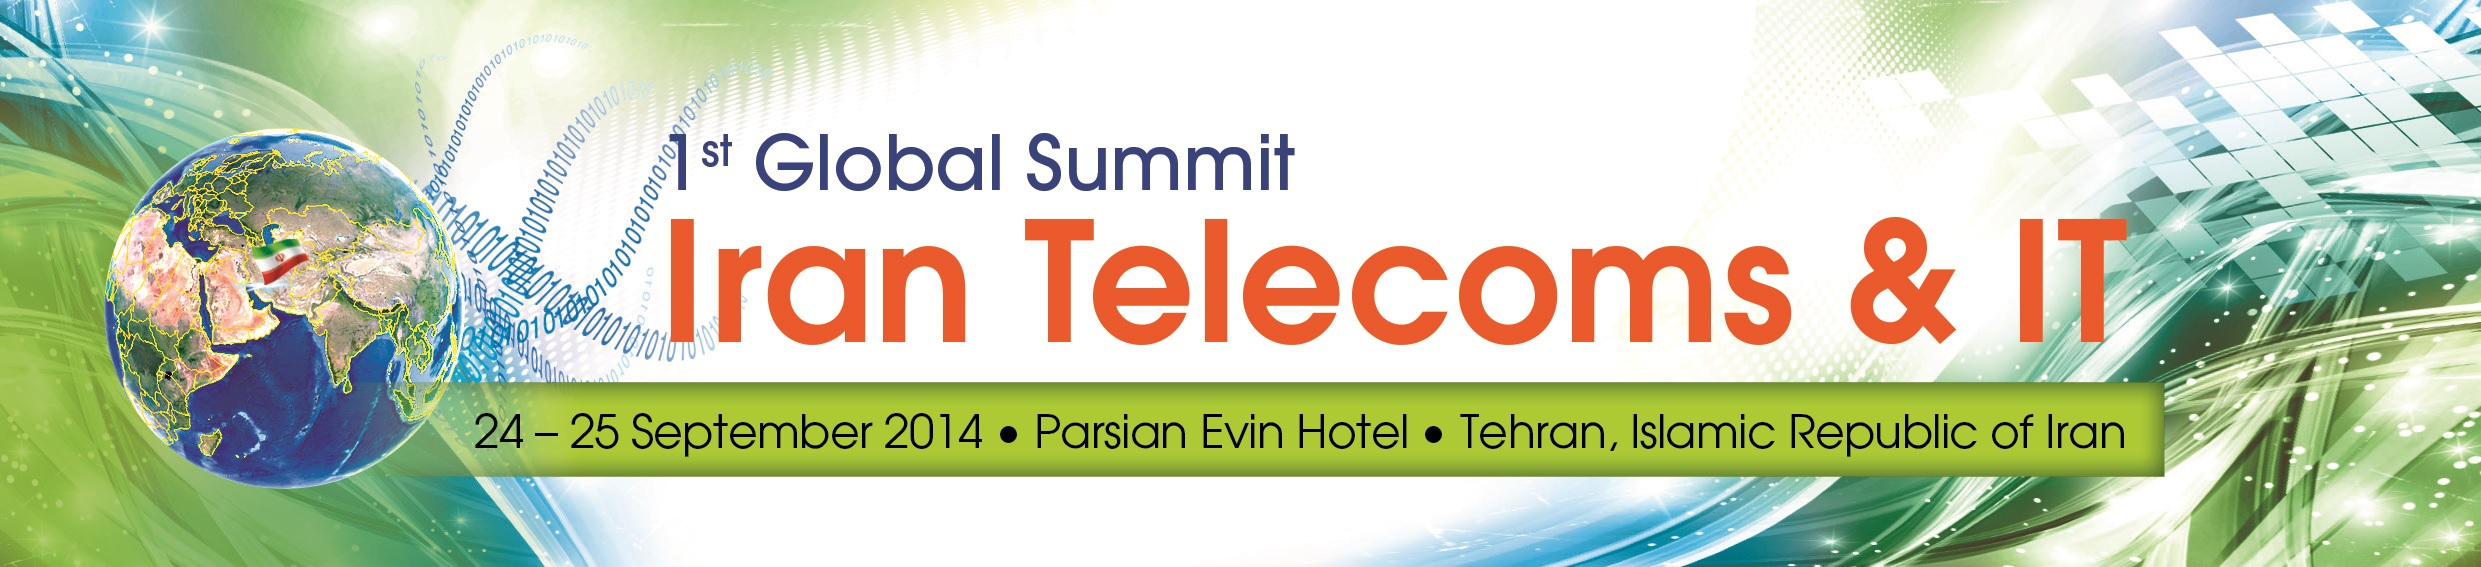 Iran Telecoms and IT Global Summit 2014